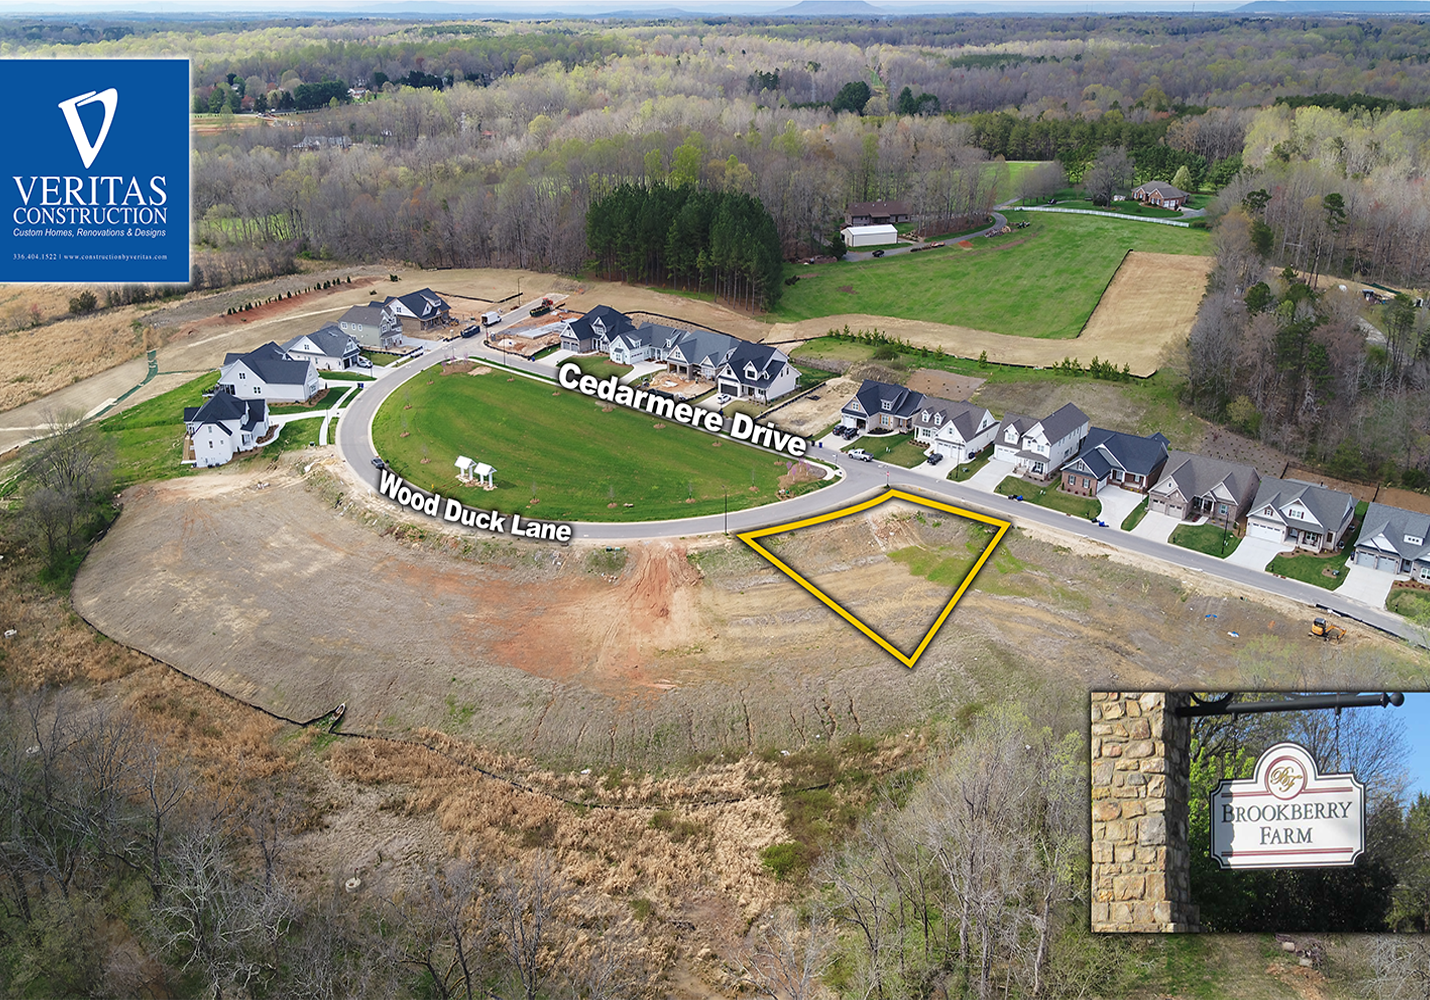 LOT - Brookberry Farm 559 (Veritas Construction)